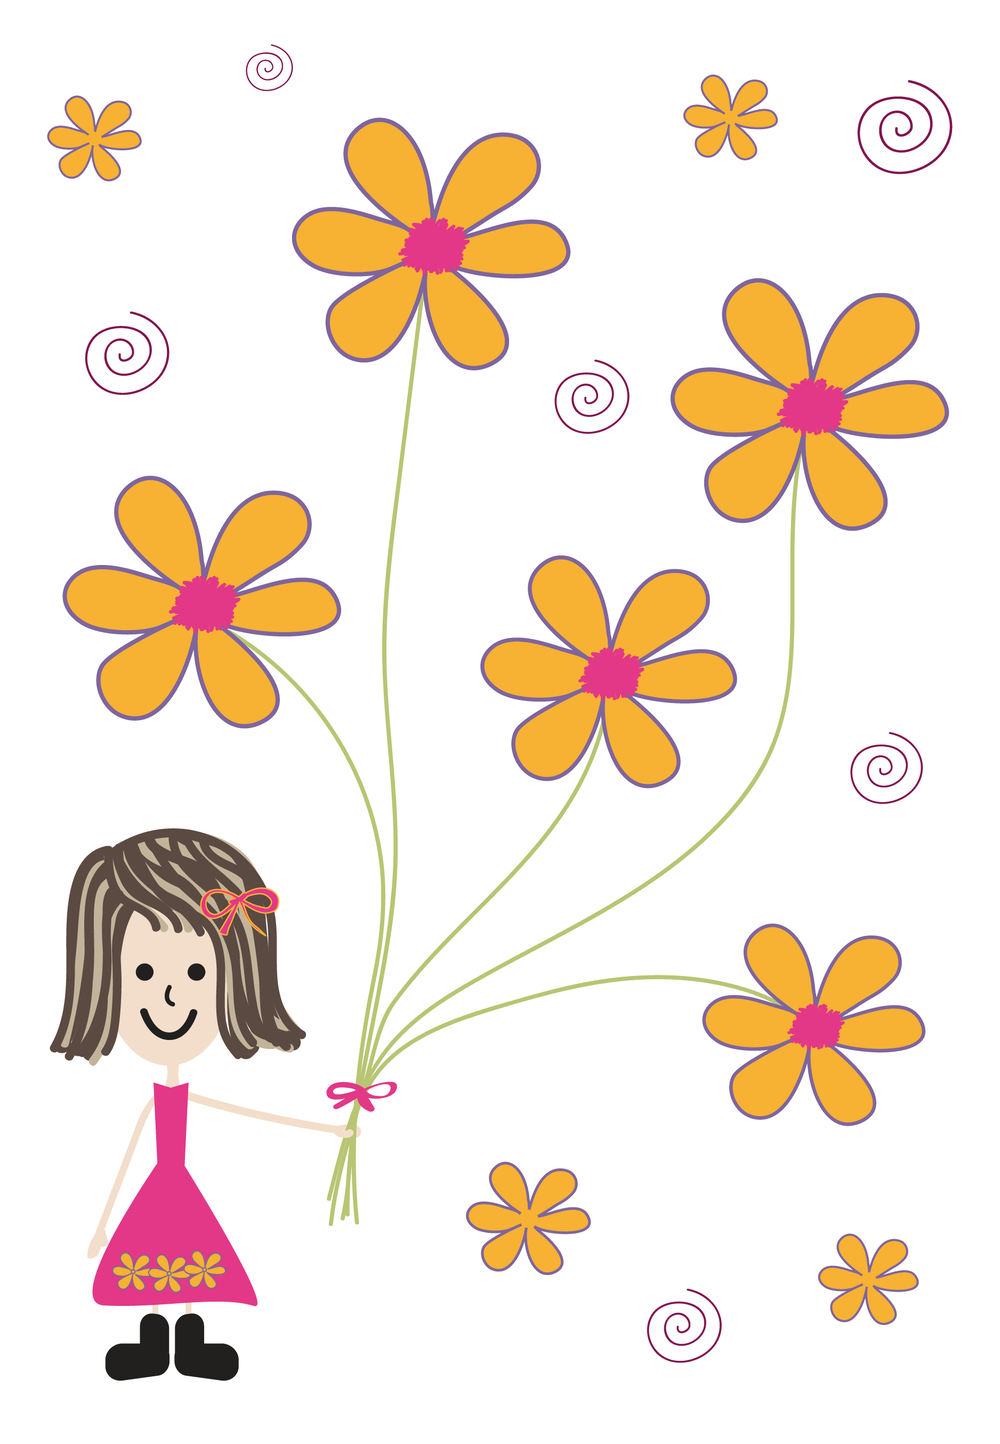 Issys Yellow Flowers_CARD 900x1300px.png